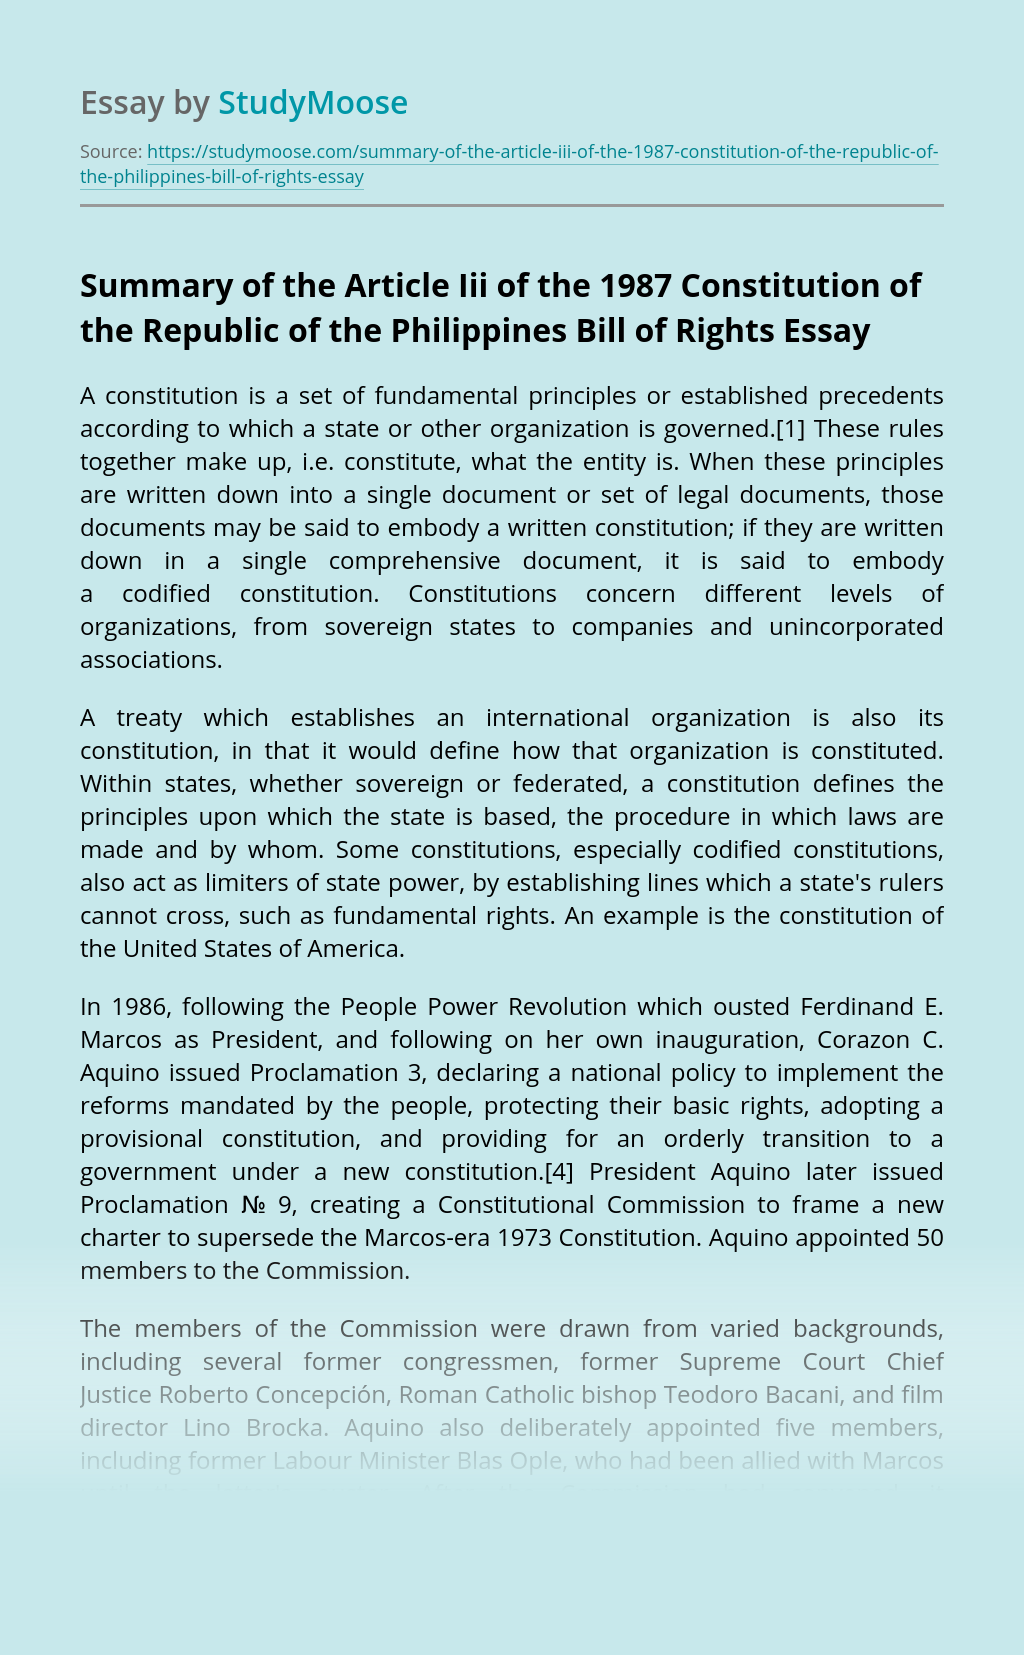 Summary of the Article Iii of the 1987 Constitution of the Republic of the Philippines Bill of Rights